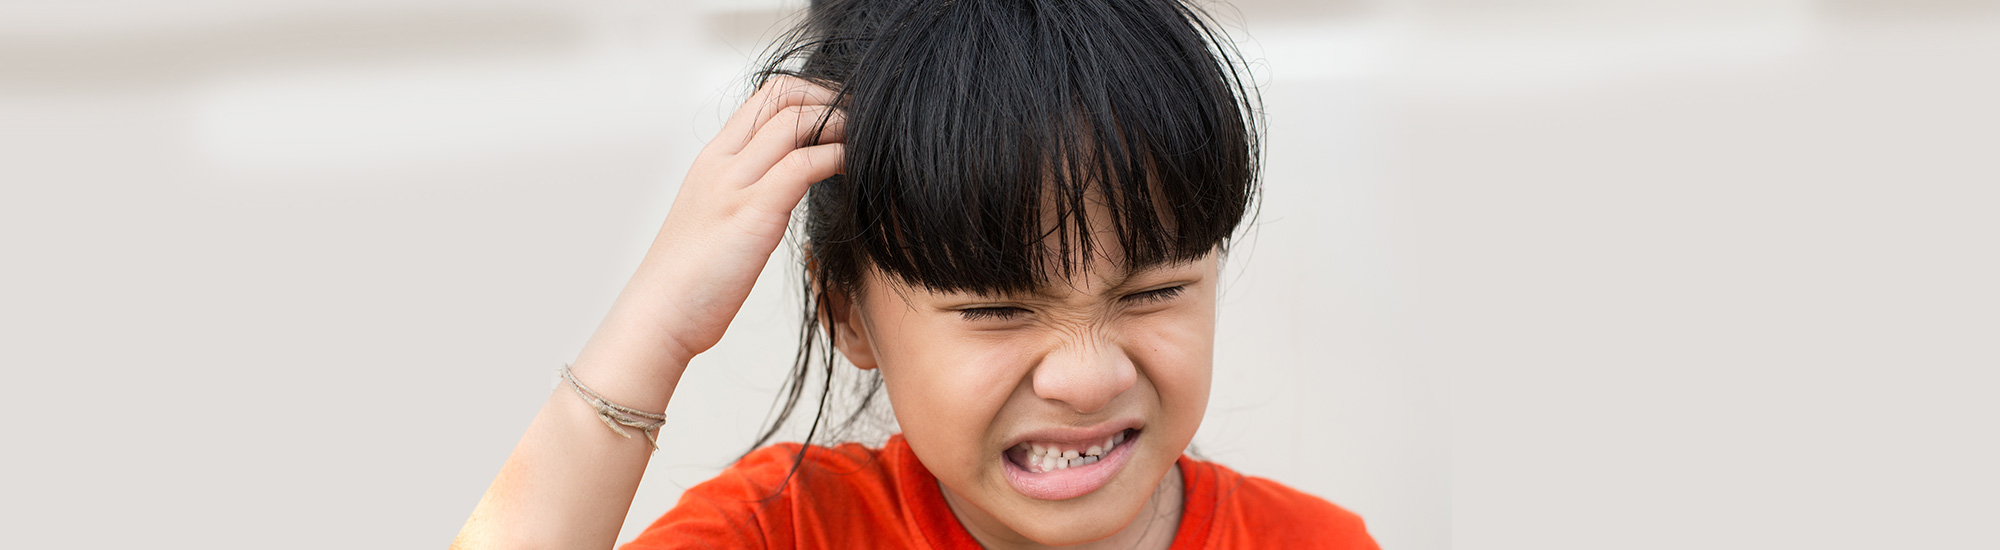 Ayurvedic treatment for Head lice Symptoms